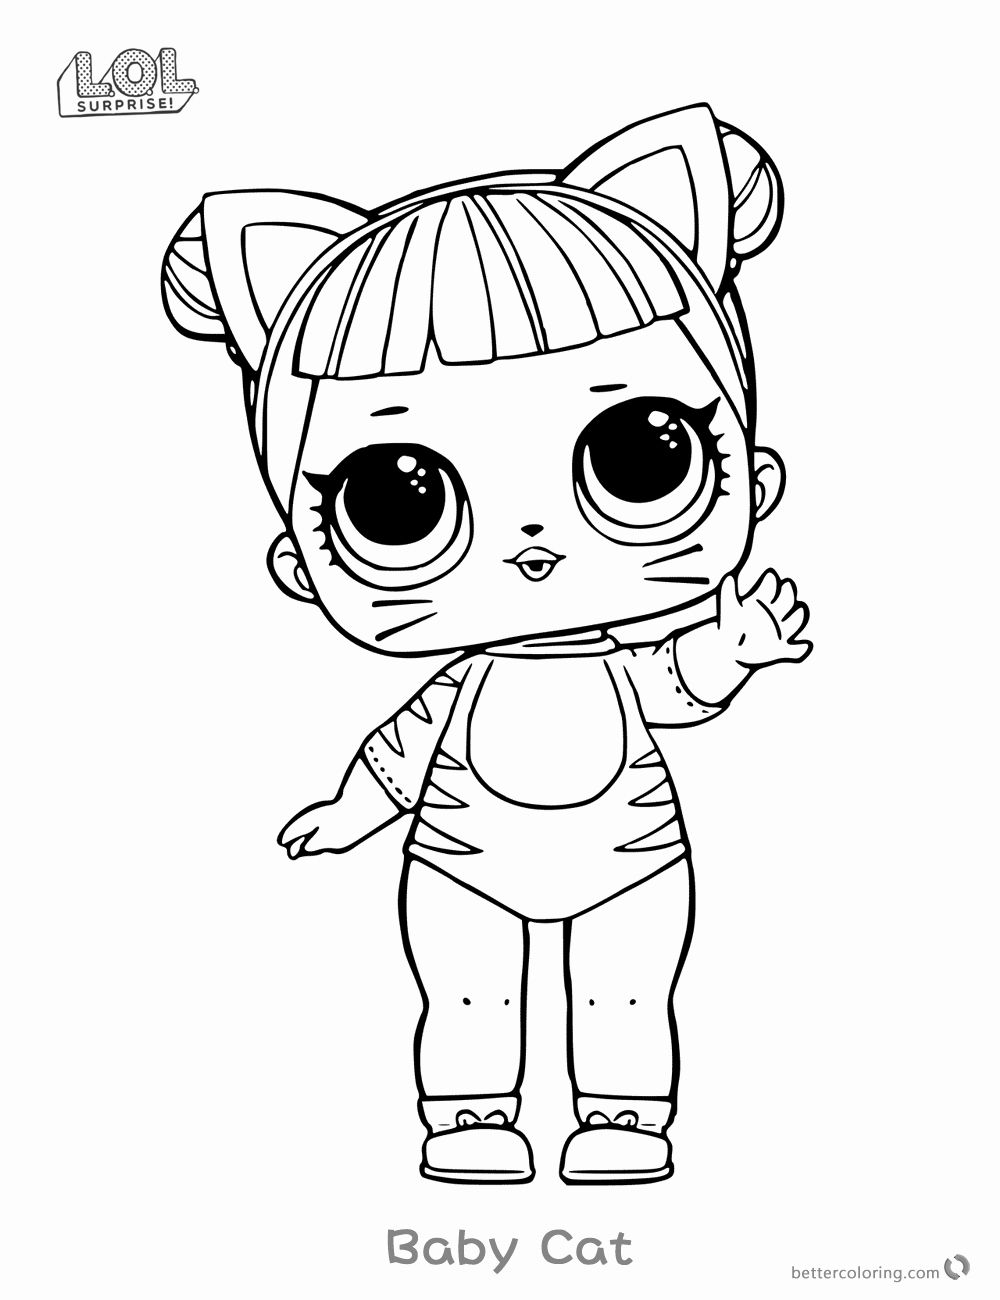 Lol Surprise Coloring Page Awesome Lol Surprise Doll Coloring Pages Series 1 Baby Cat Free In 2020 Coloring Pages For Kids Cute Coloring Pages Lol Dolls